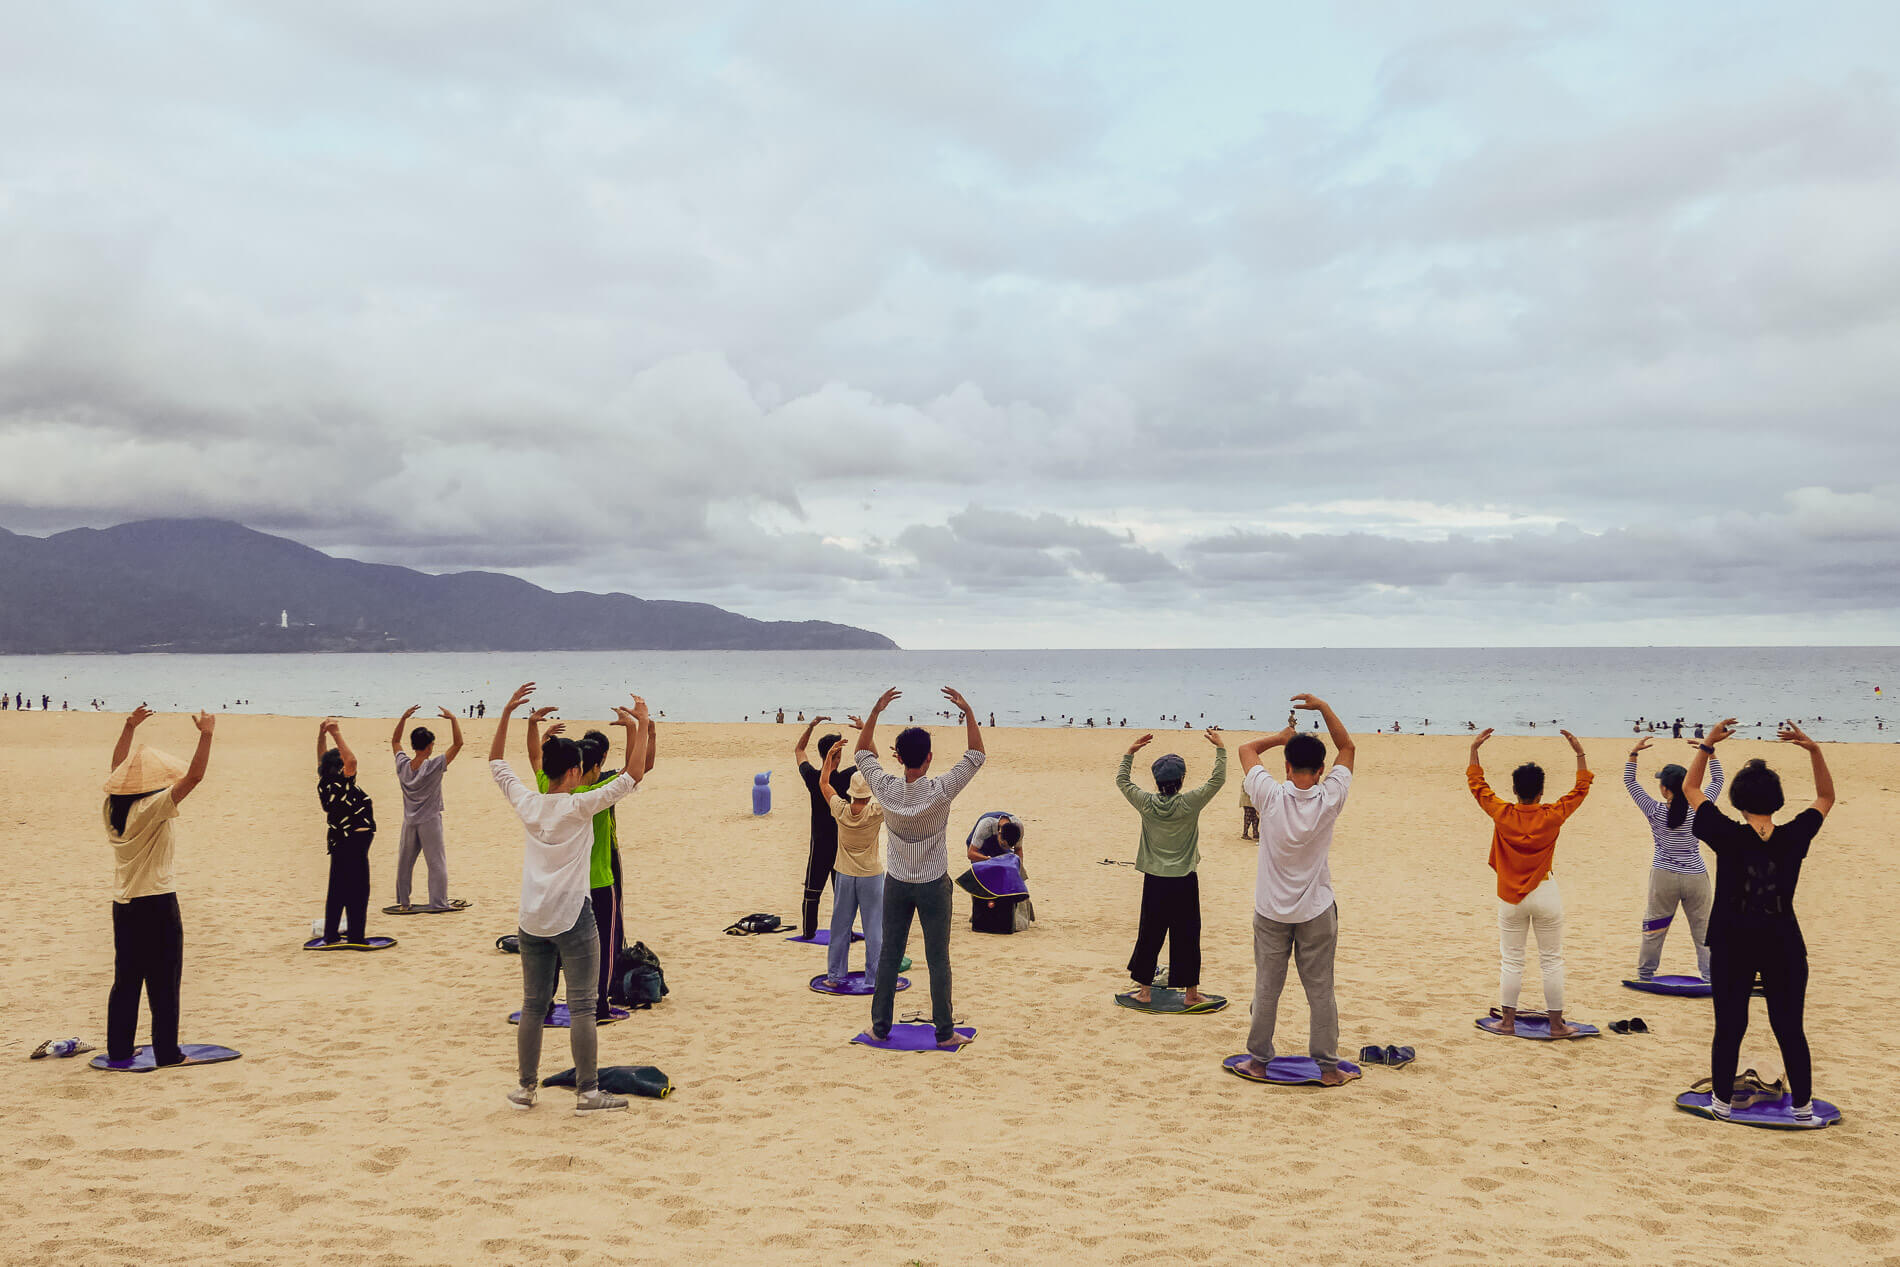 Yoga class on My Khe Beach in Da Nang